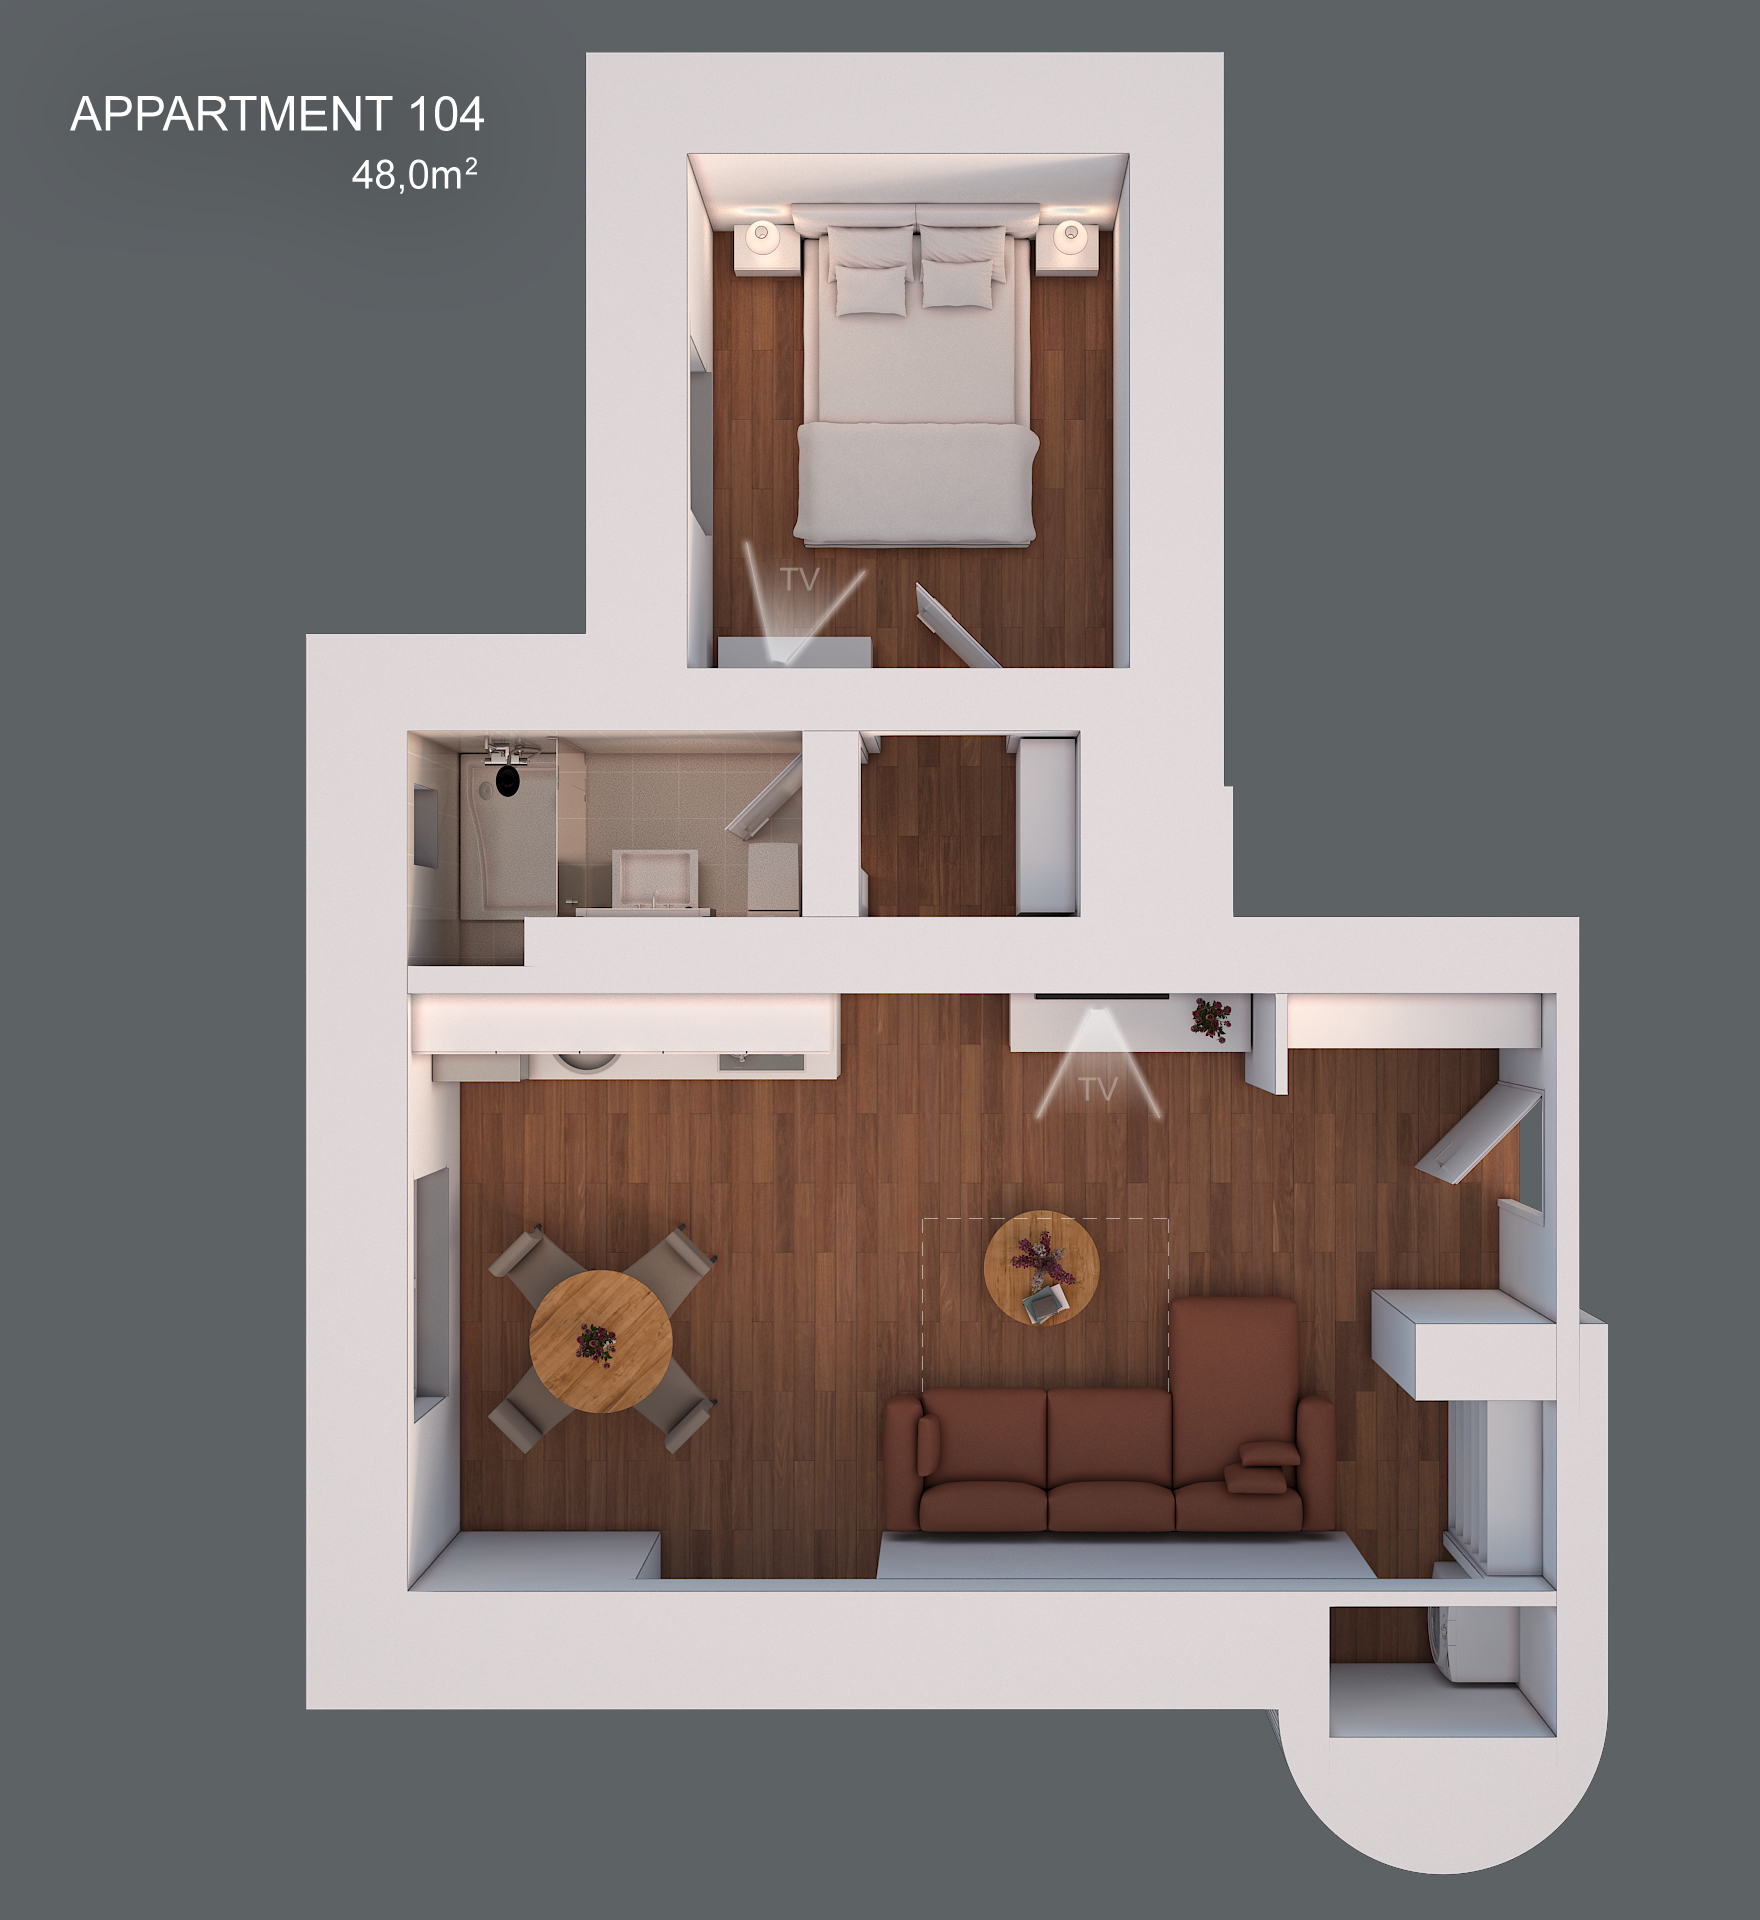 Apartment 104 layout